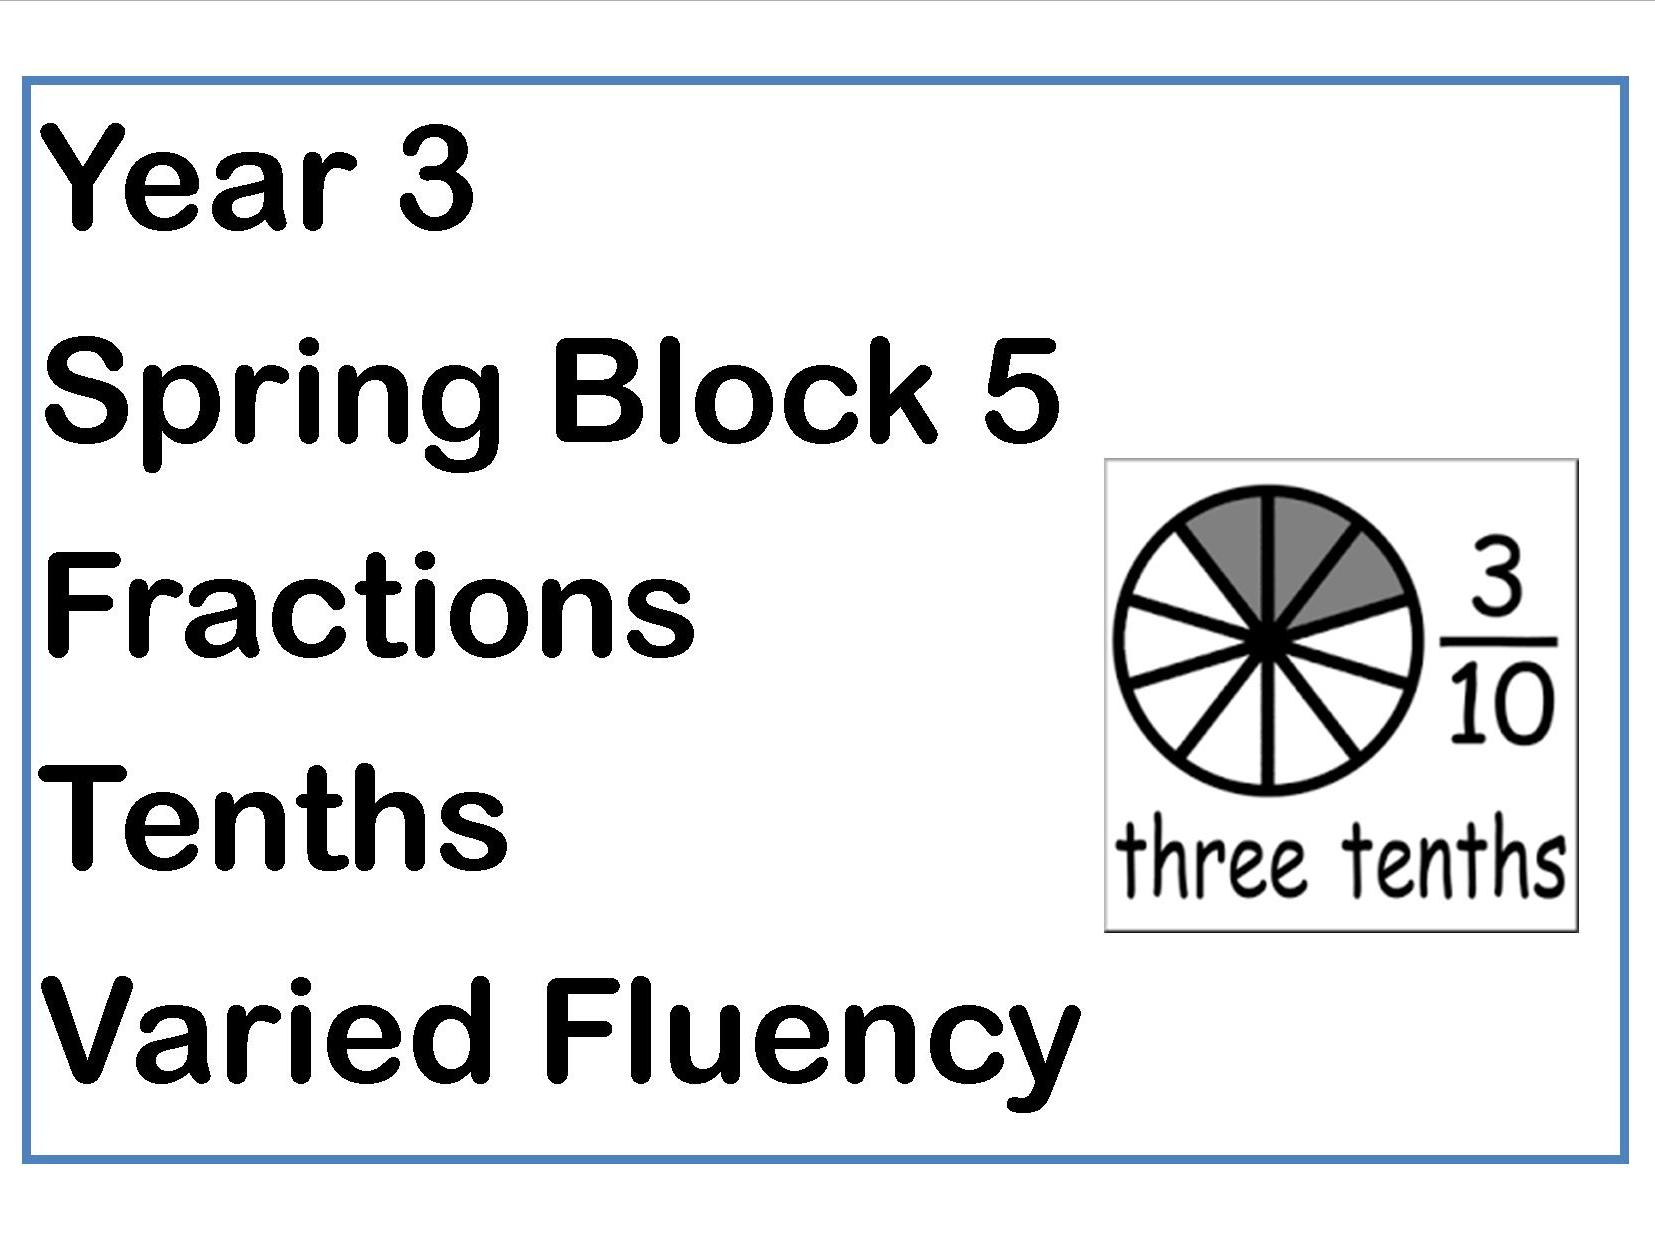 Year 3 Spring Block 5 Fractions Varied Fluency Tenths By Becky78